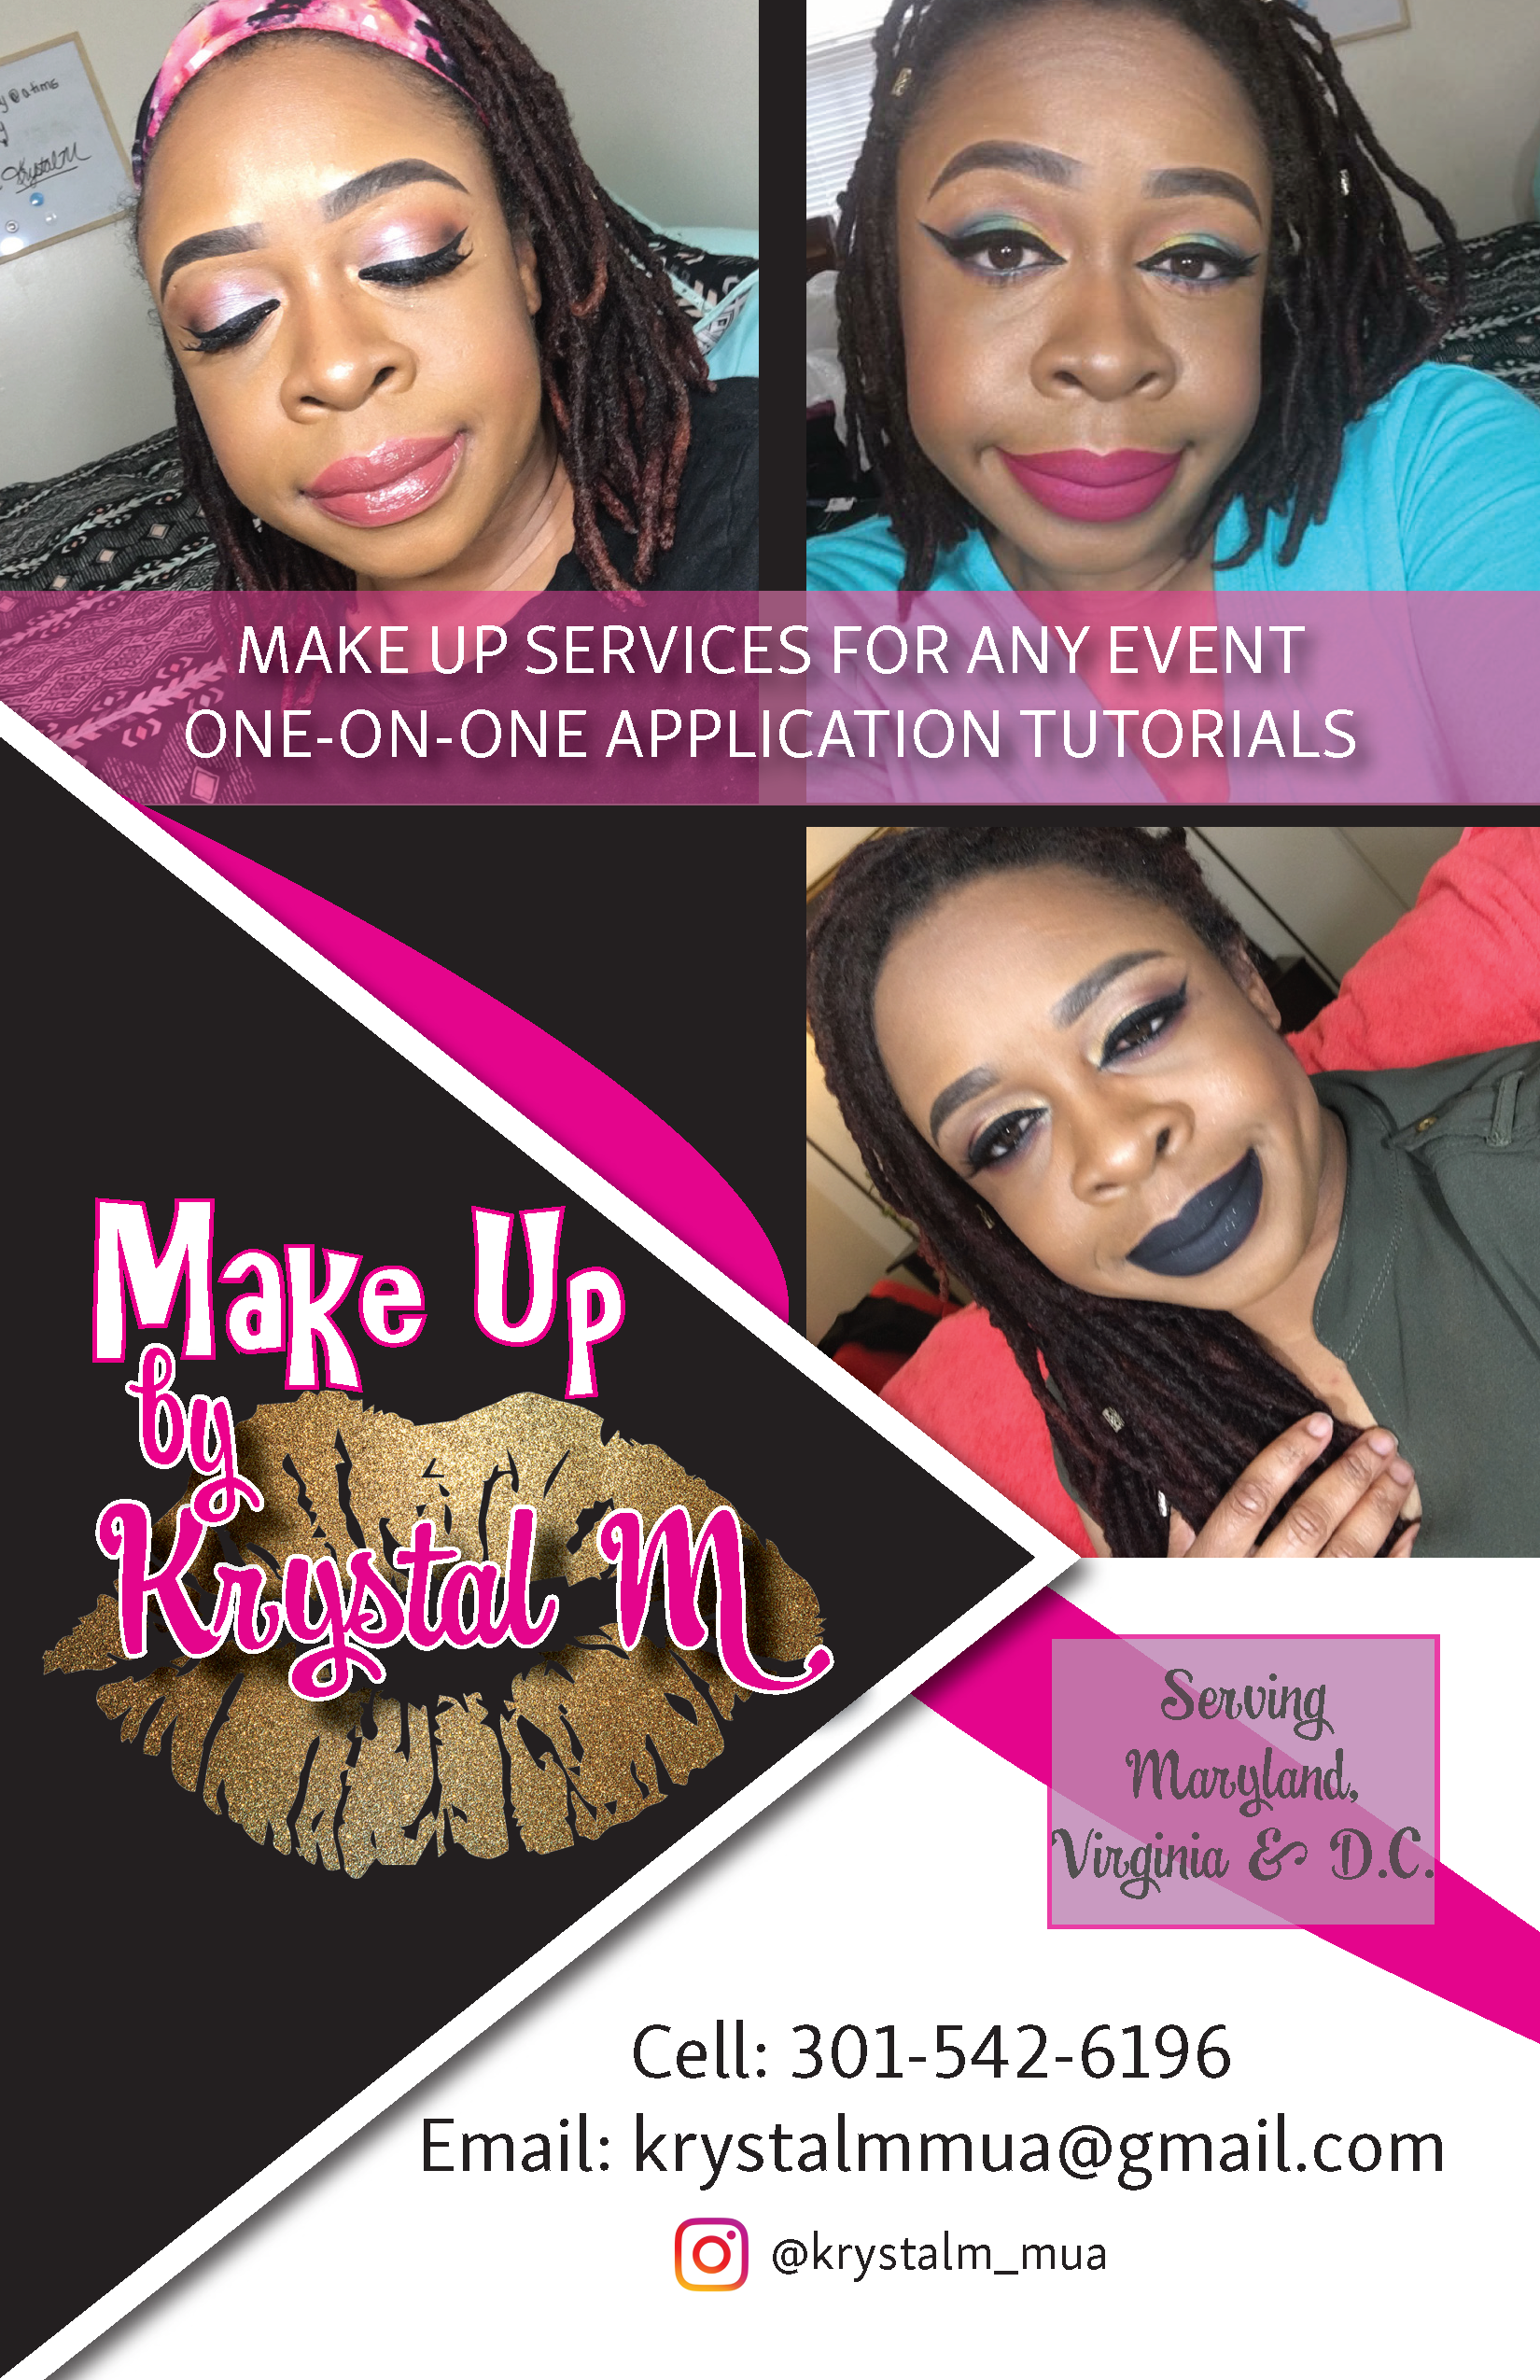 Make Up by Krystal M_Page_1.png